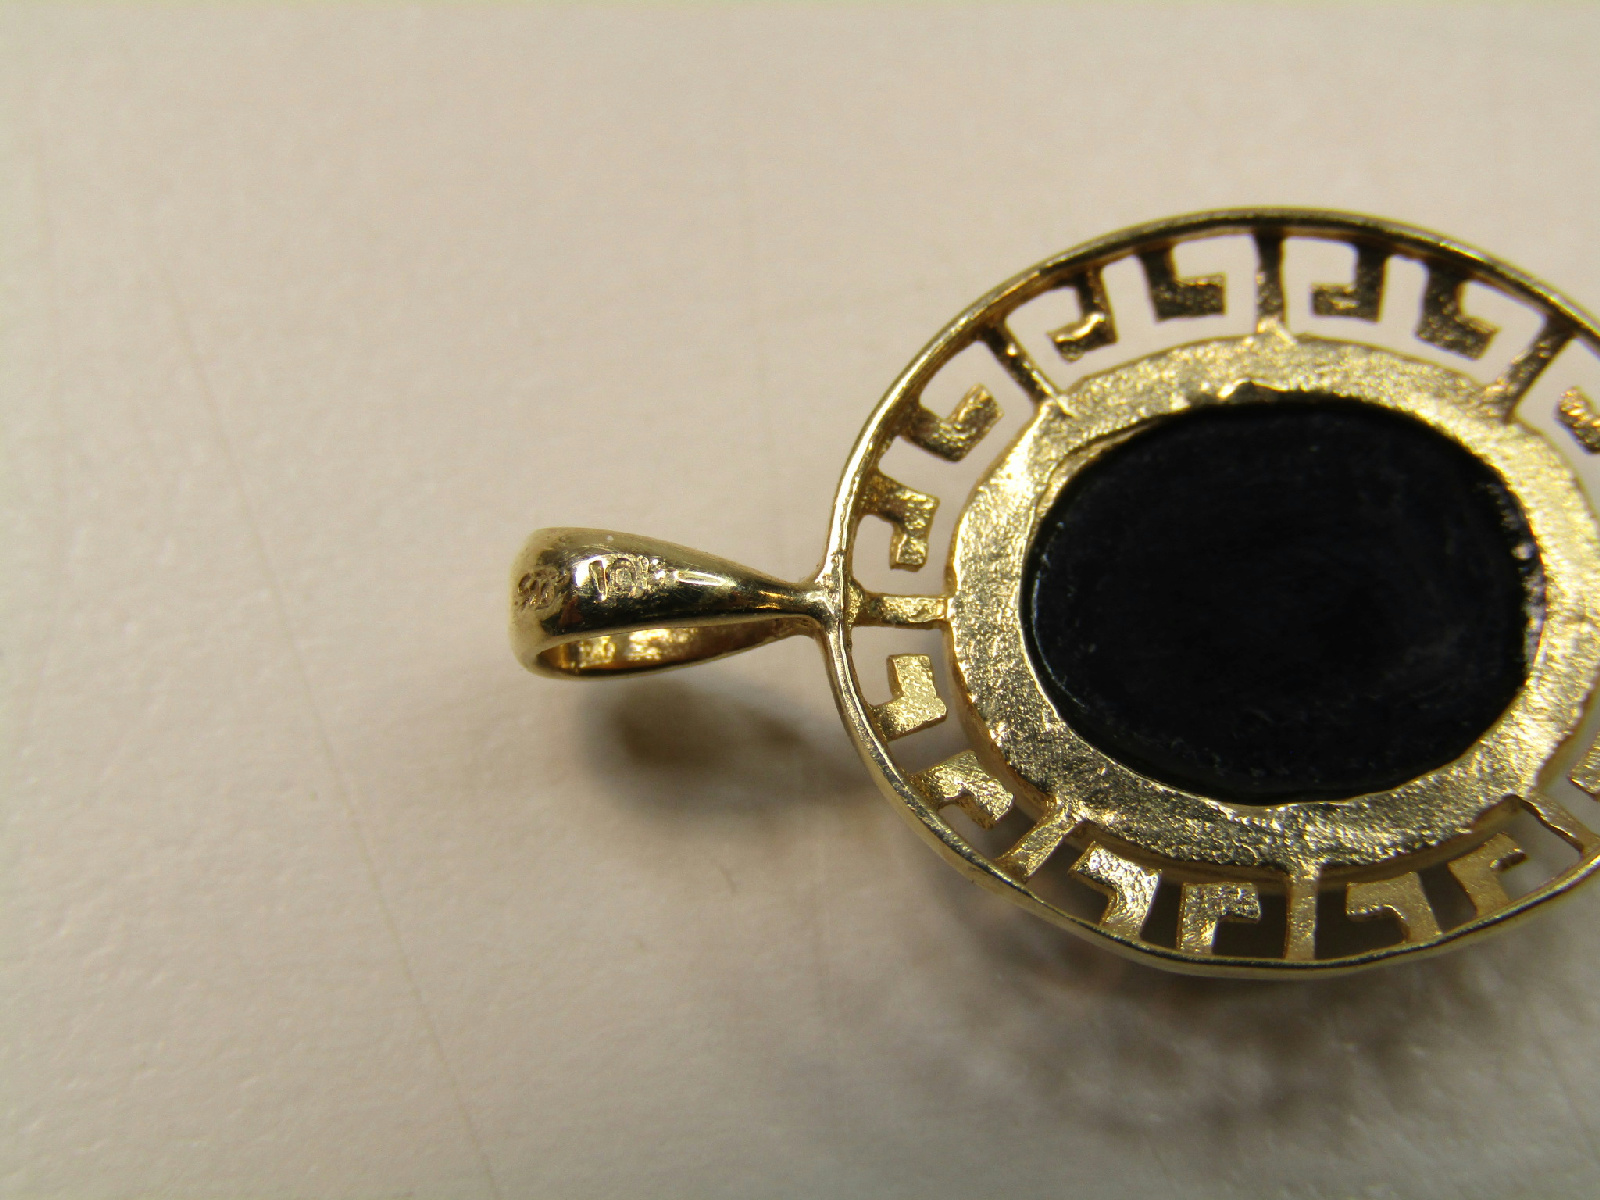 10k marked yellow gold jewelry black cabochon stone pendant. Black Bedroom Furniture Sets. Home Design Ideas